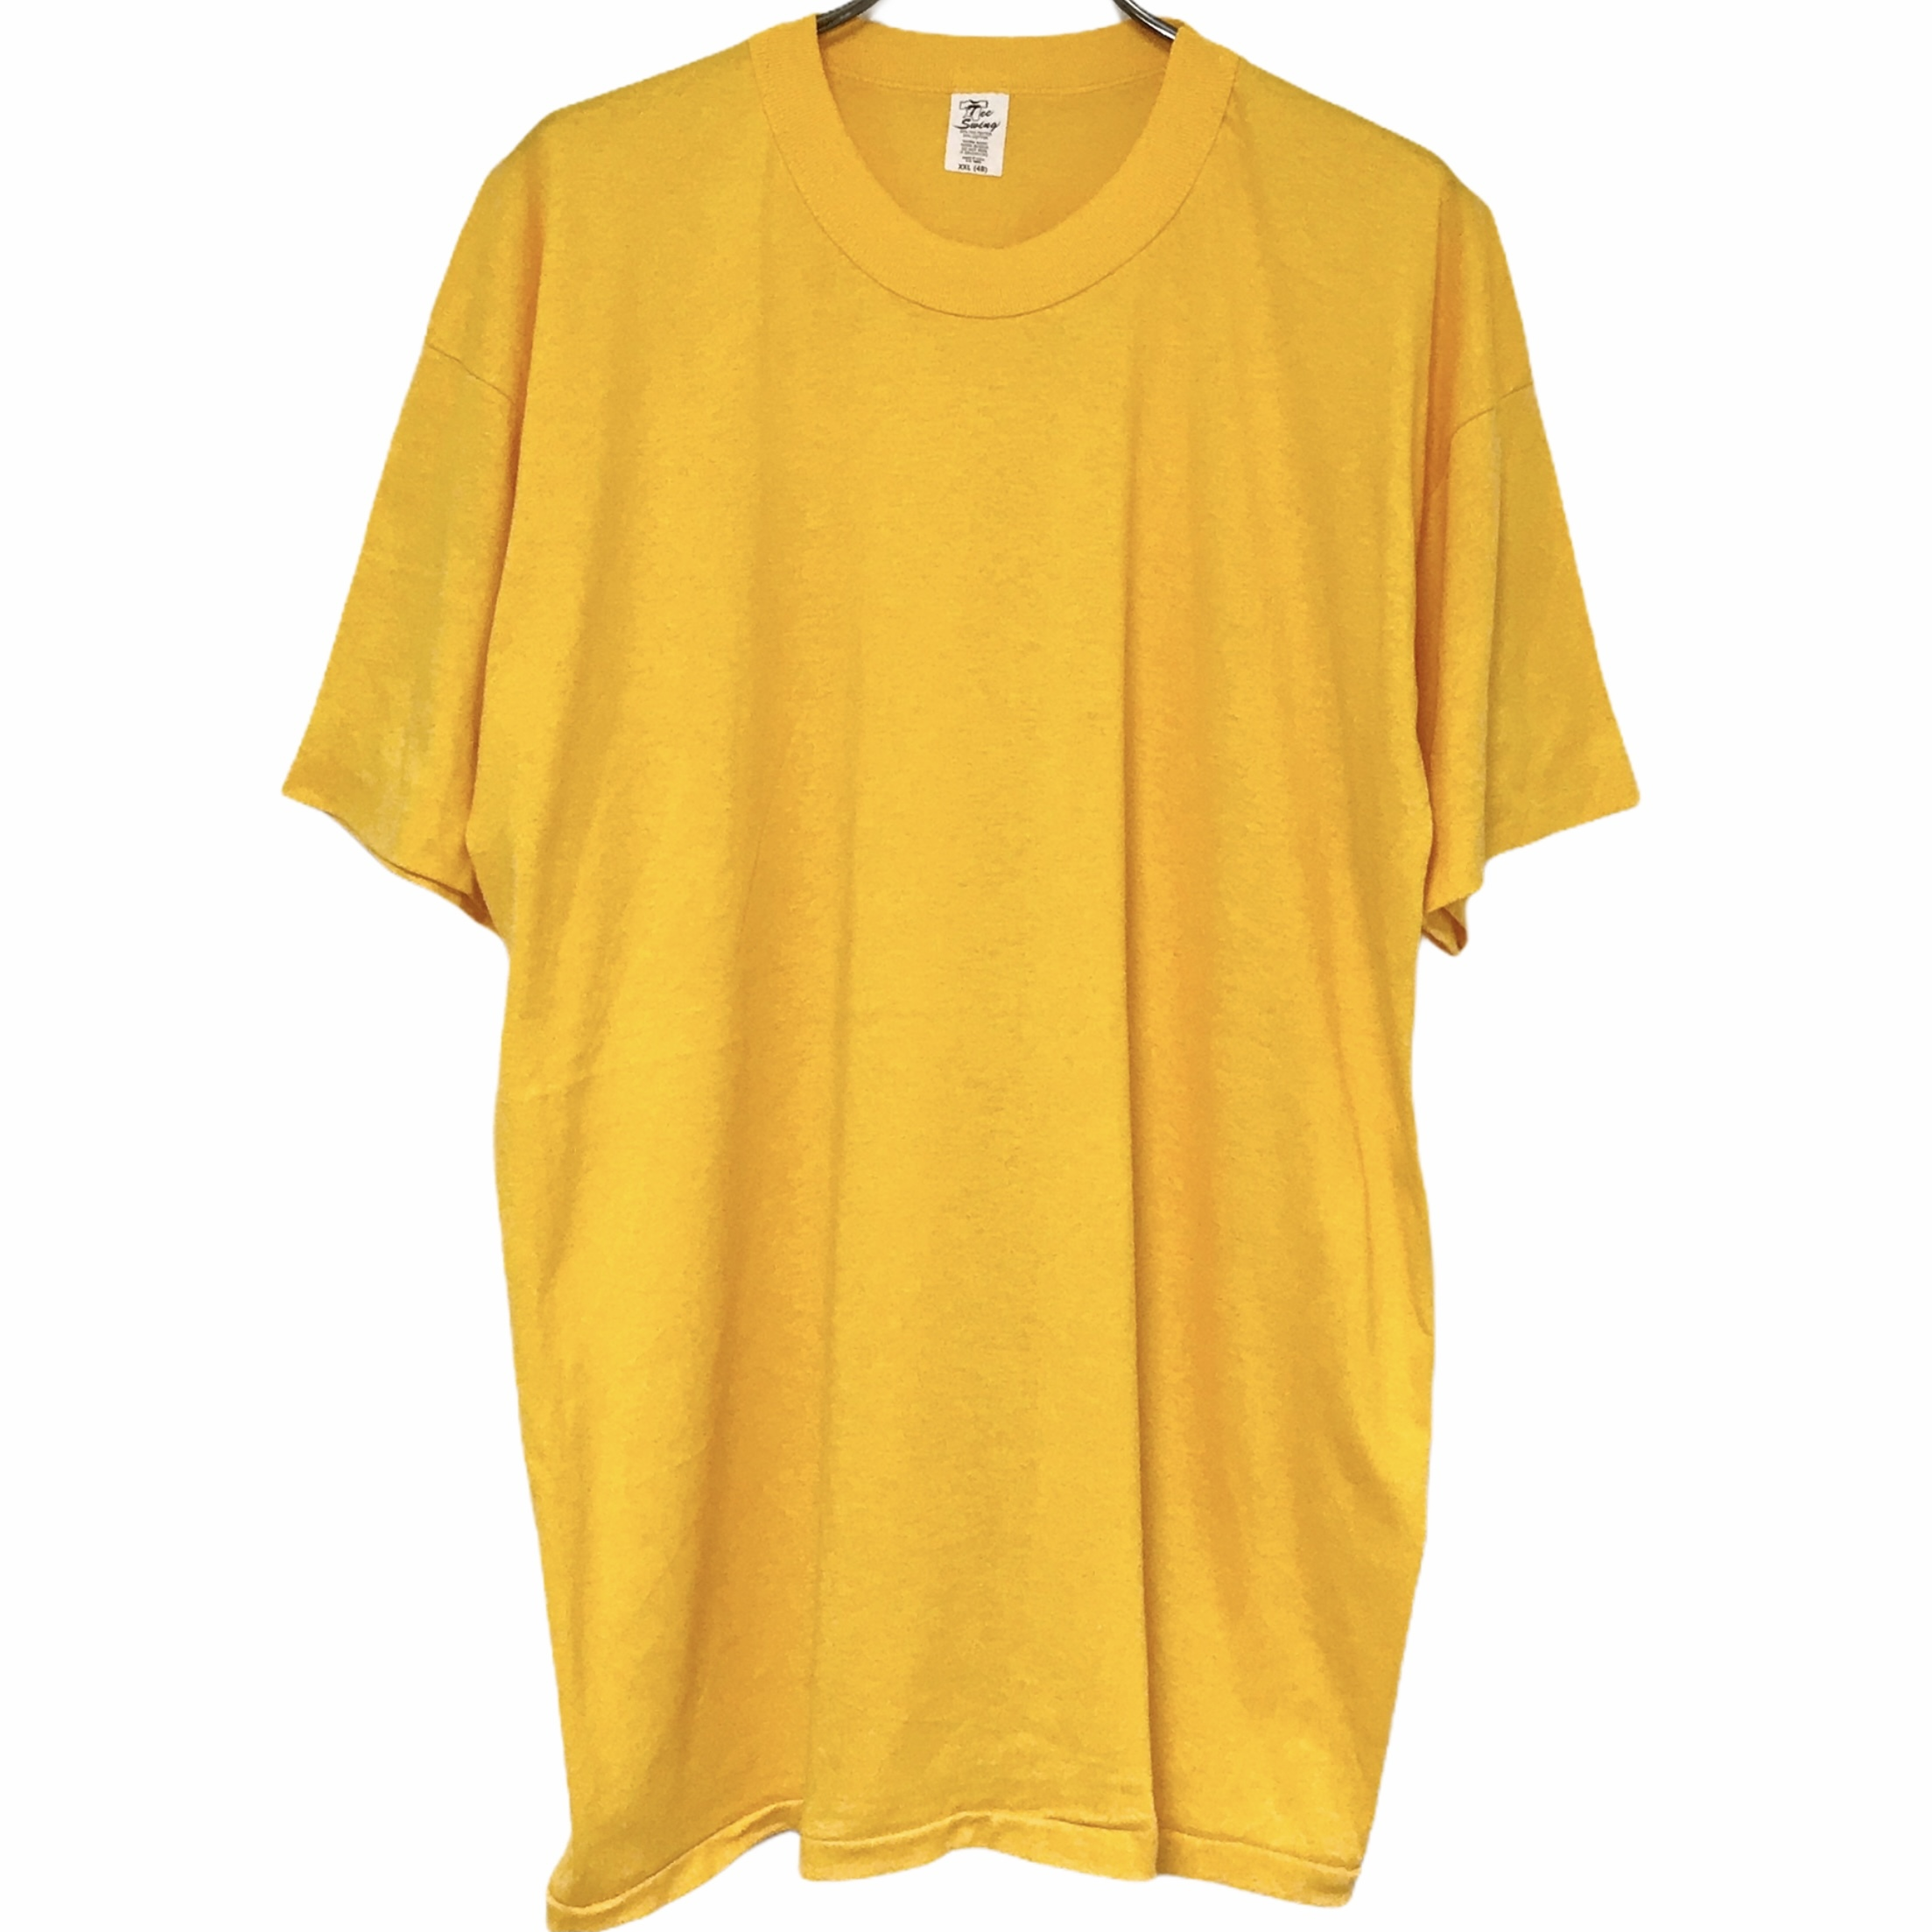 Dead Stock! 80's Tee Swing T-shirt made in USA Yellow